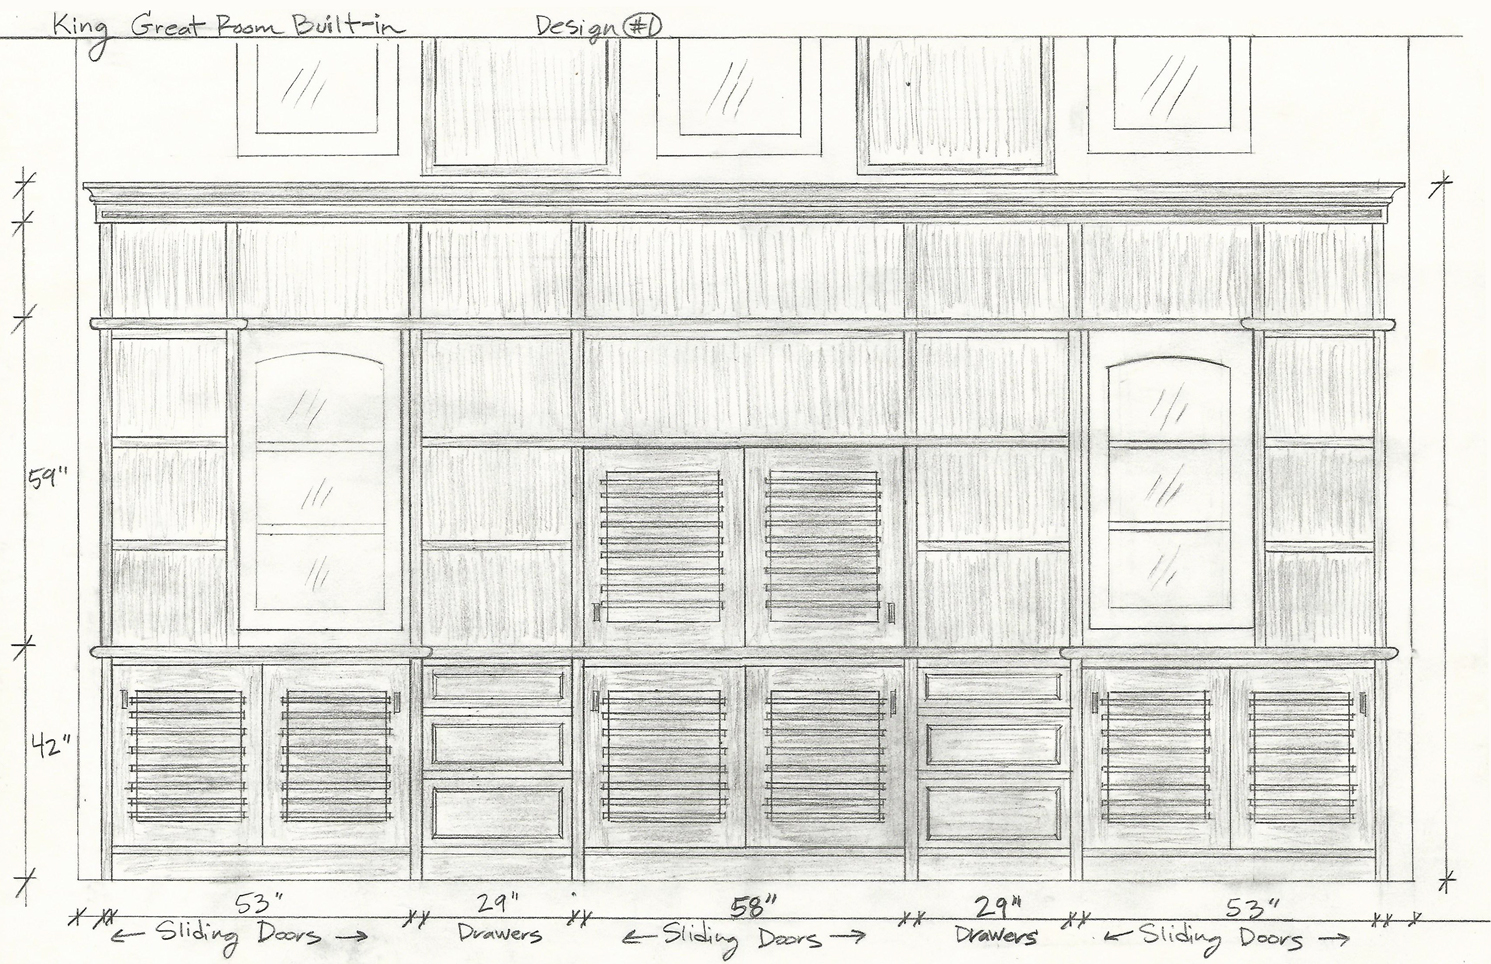 pencil sketch design of walnut media center